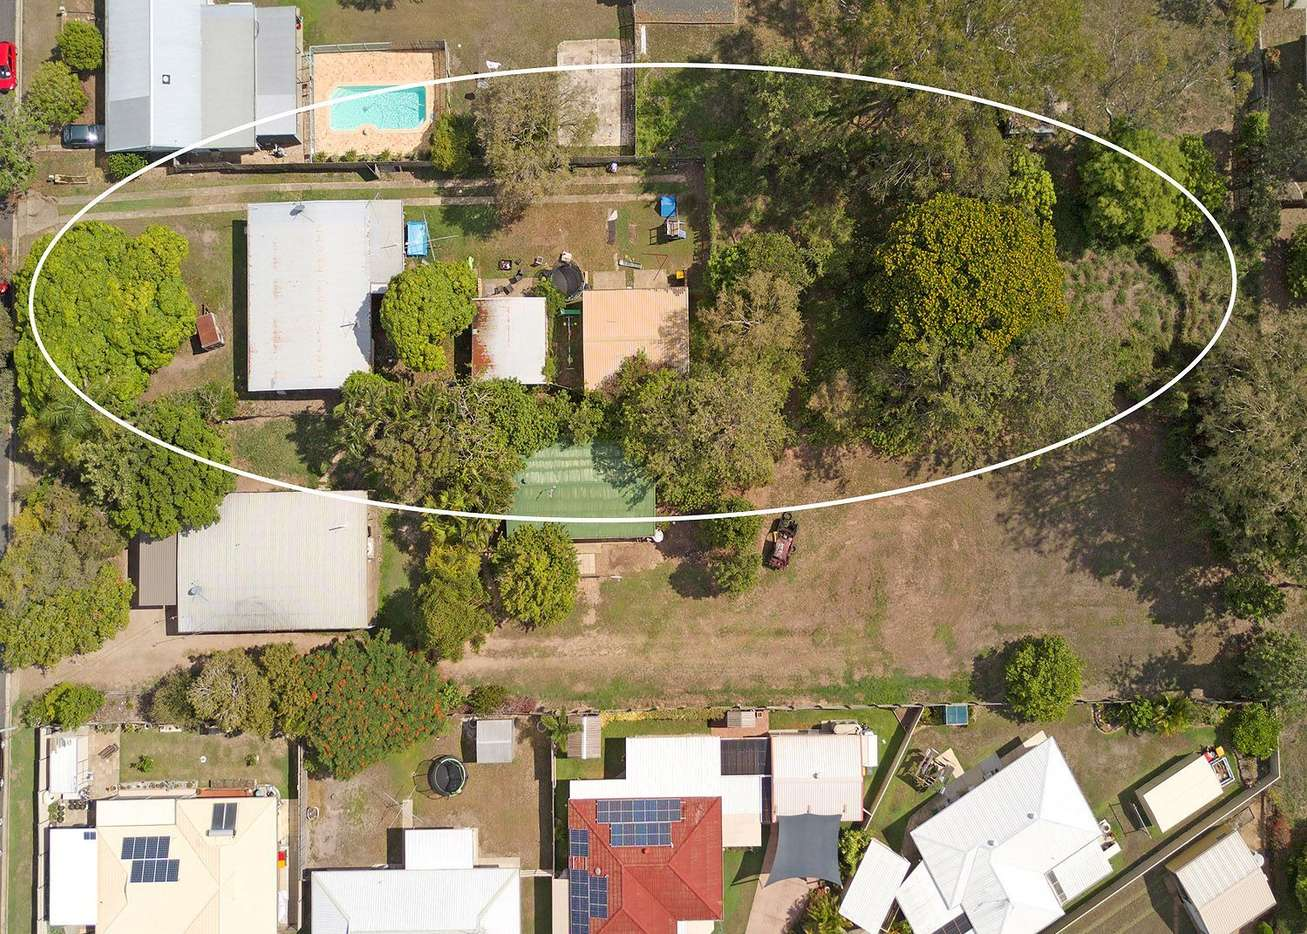 Main view of Homely house listing, 34 Neils Street, Pialba, QLD 4655